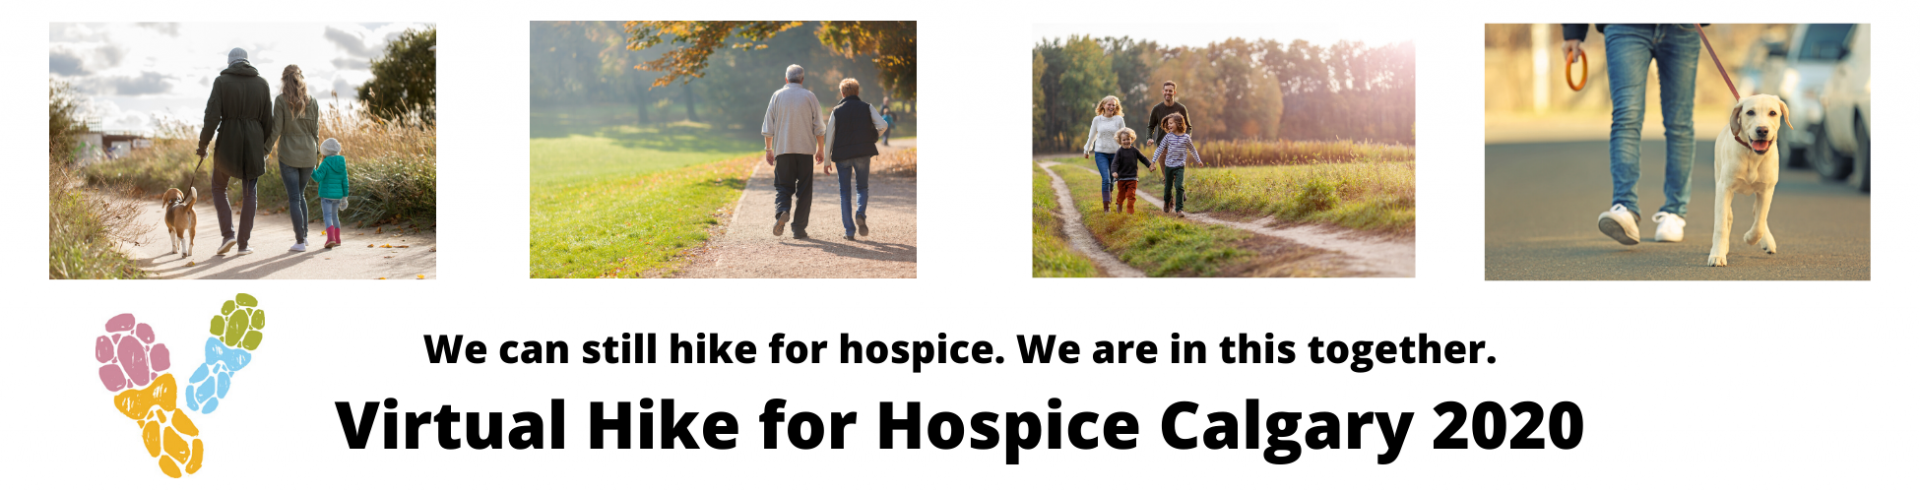 Virtual Hike for Hospice